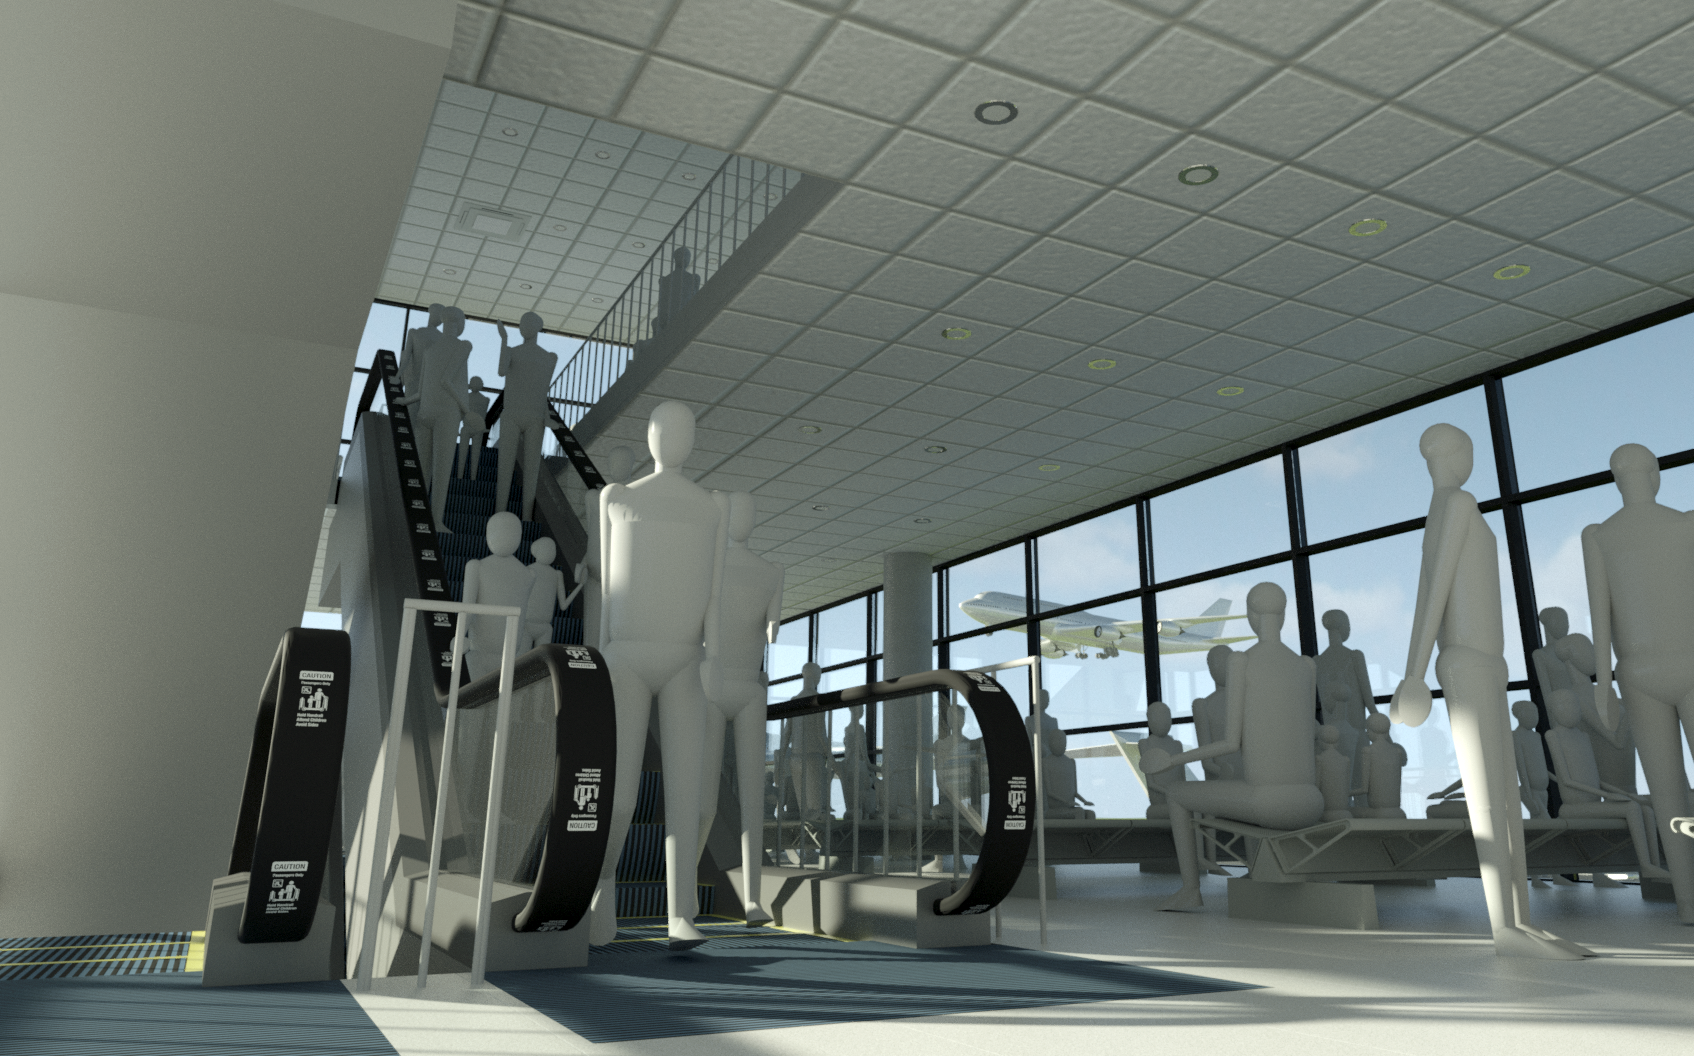 Revit rendering showing escalator and Andy in airport scene.